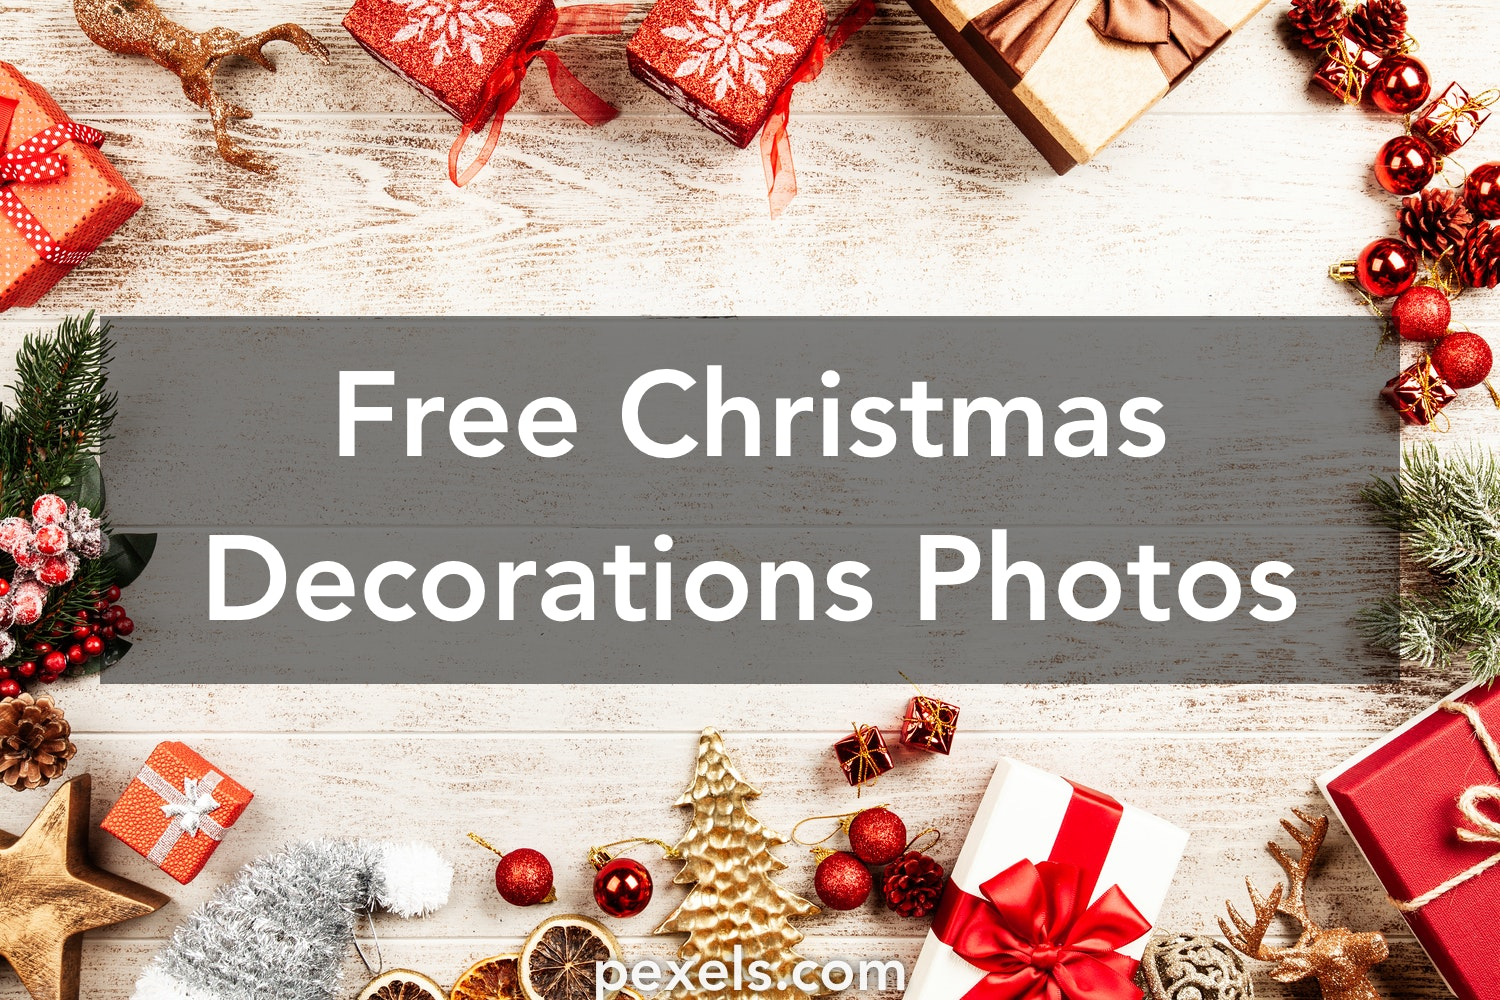 1000 engaging christmas decorations photos pexels free stock photos - Free Christmas Decorations